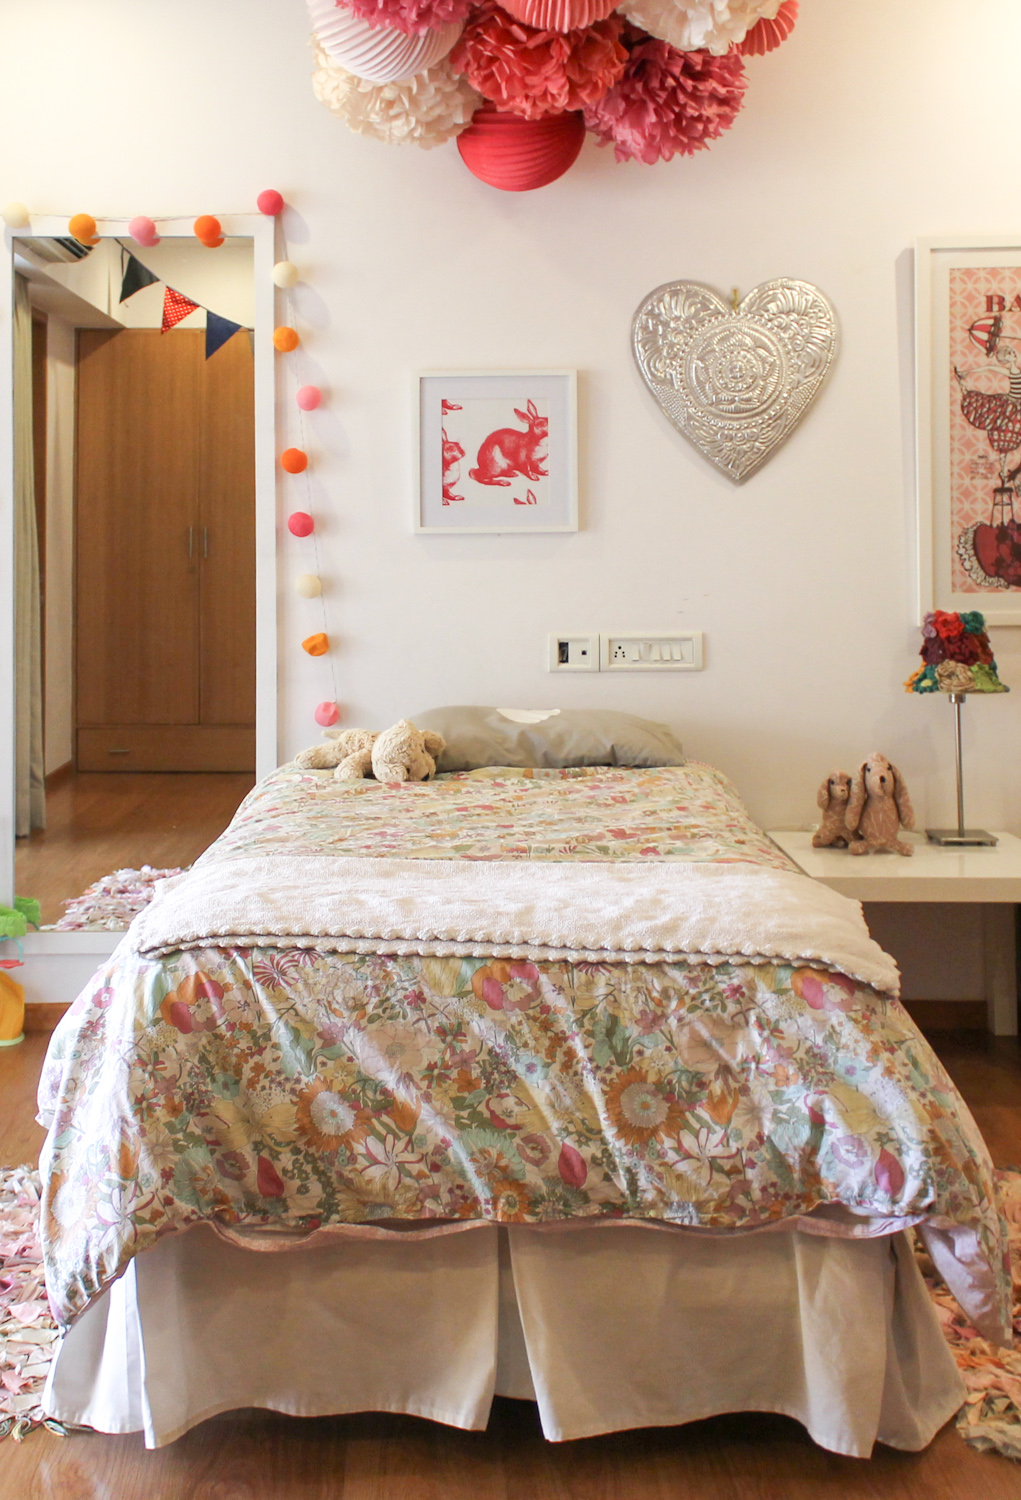 Kids Room with Pom-poms 2